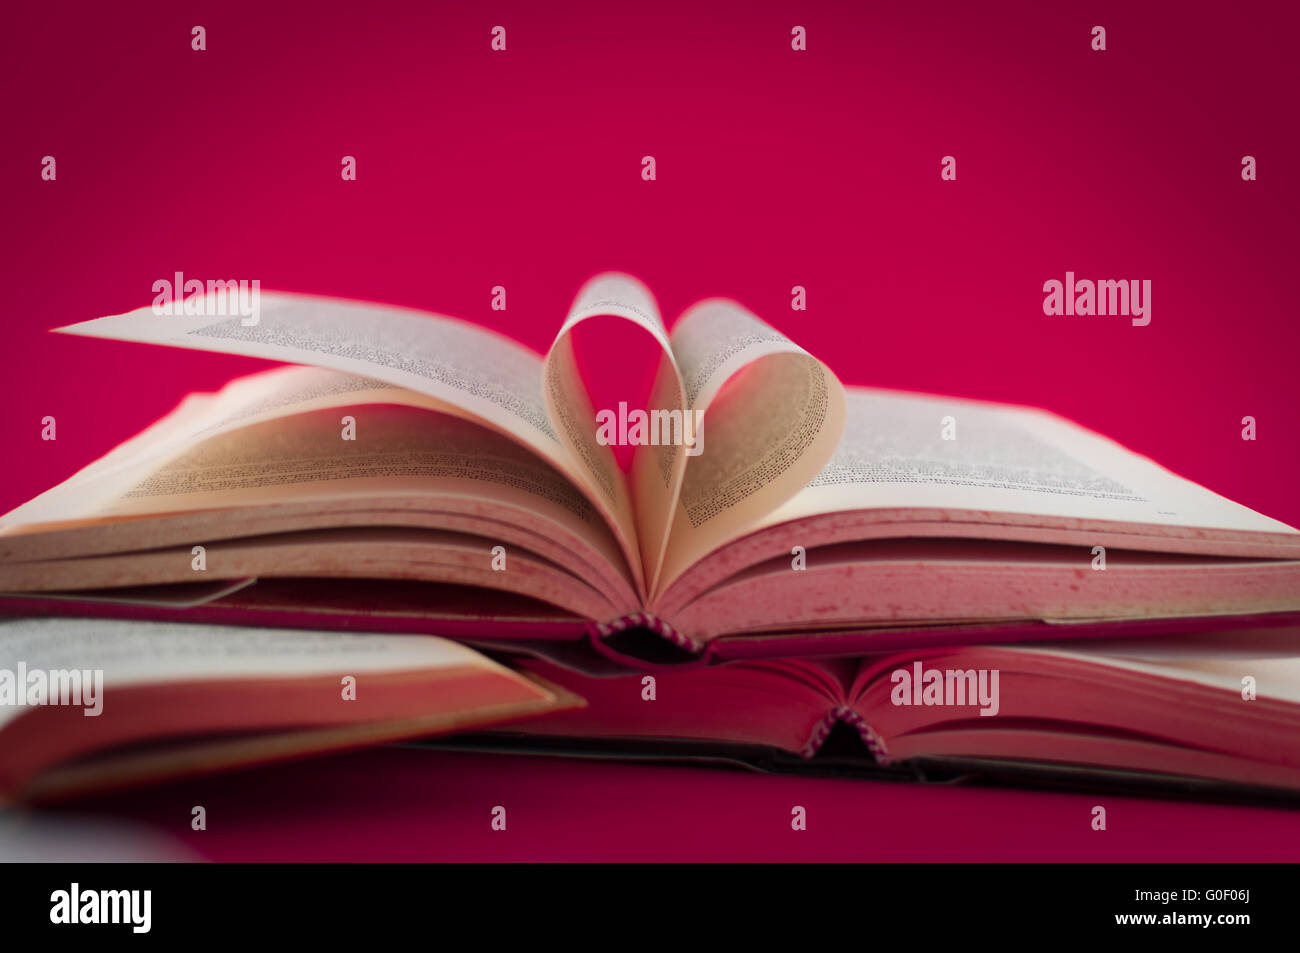 books open on colored background Stock Photo